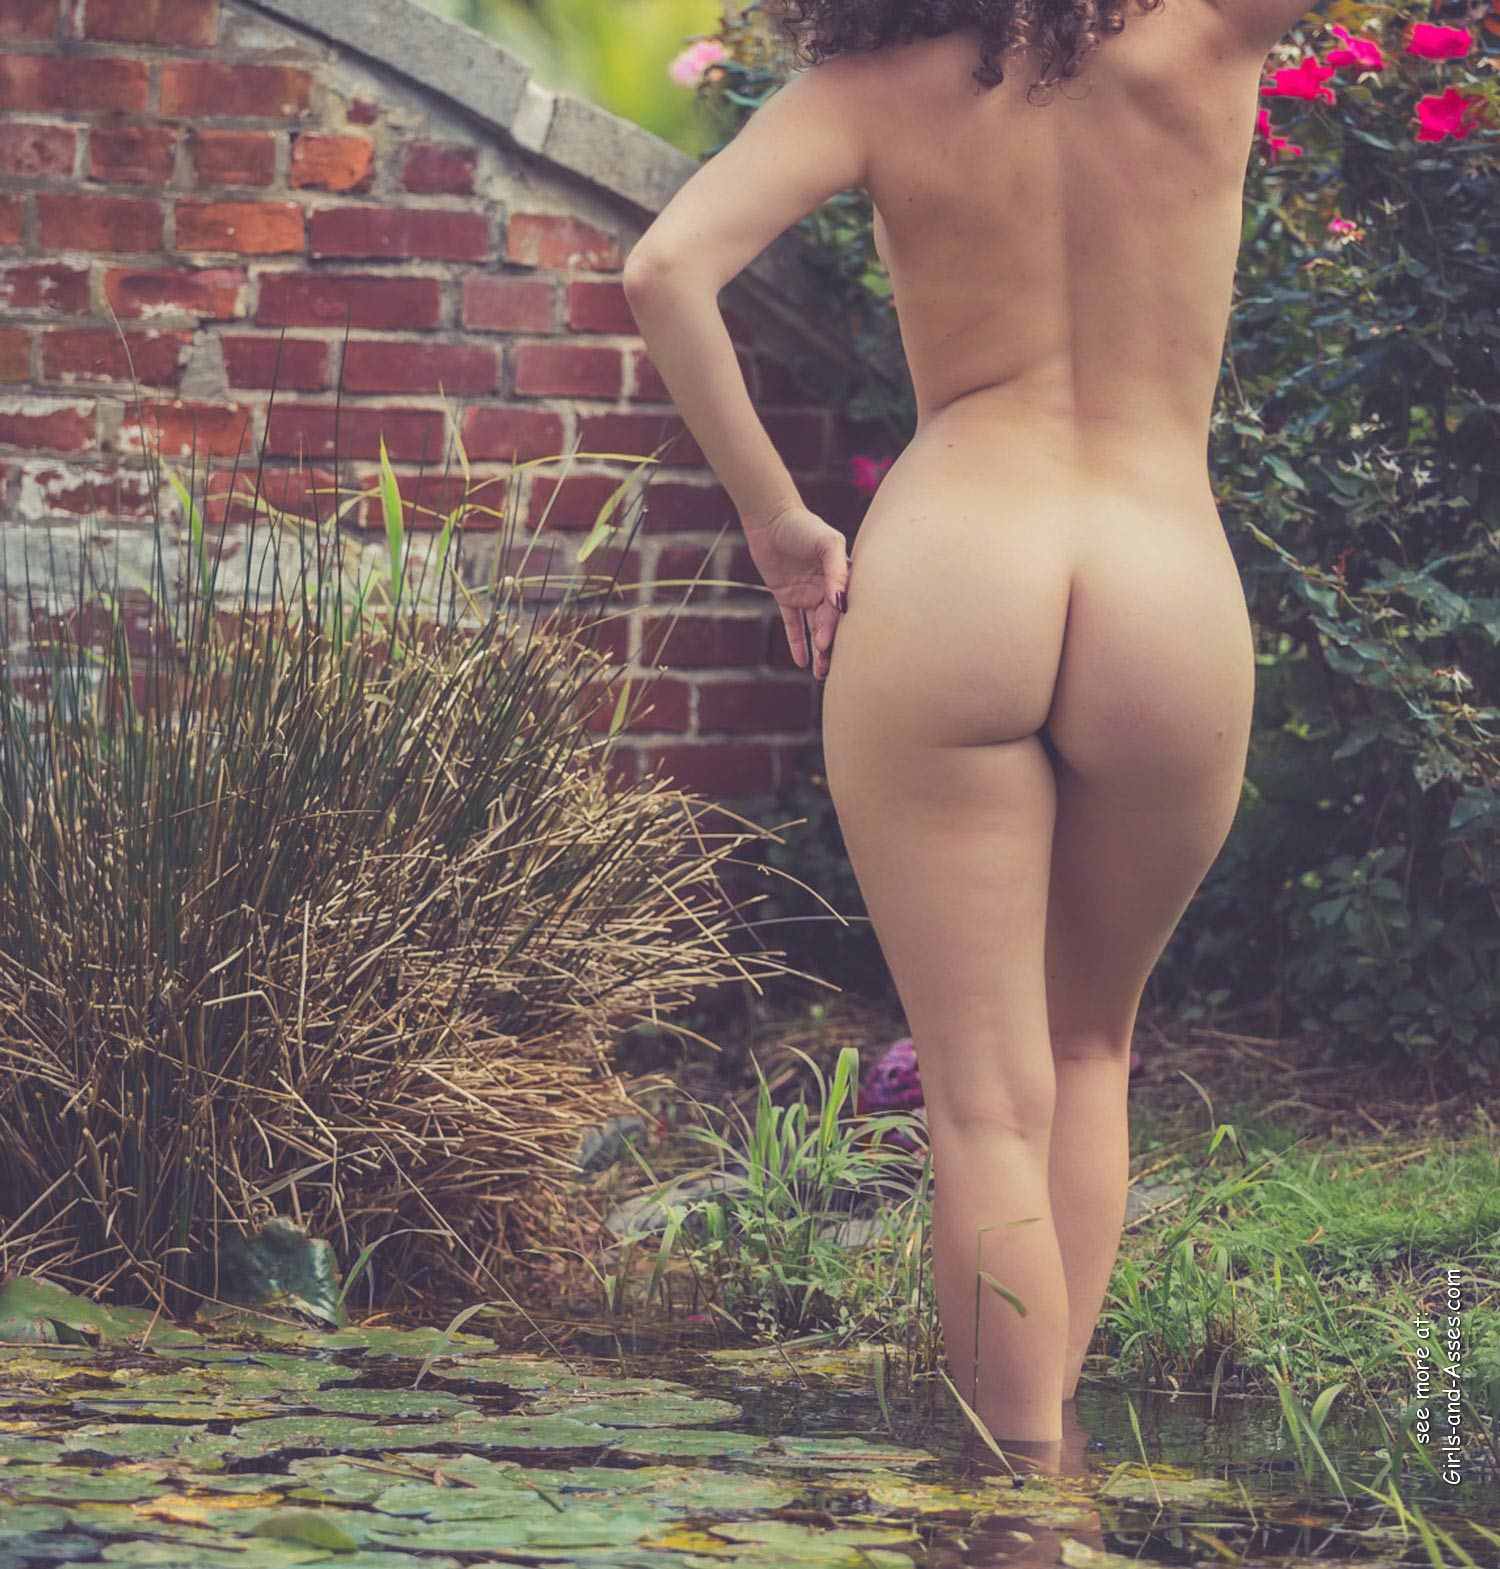 naked girl with big ass in a river picture 02409